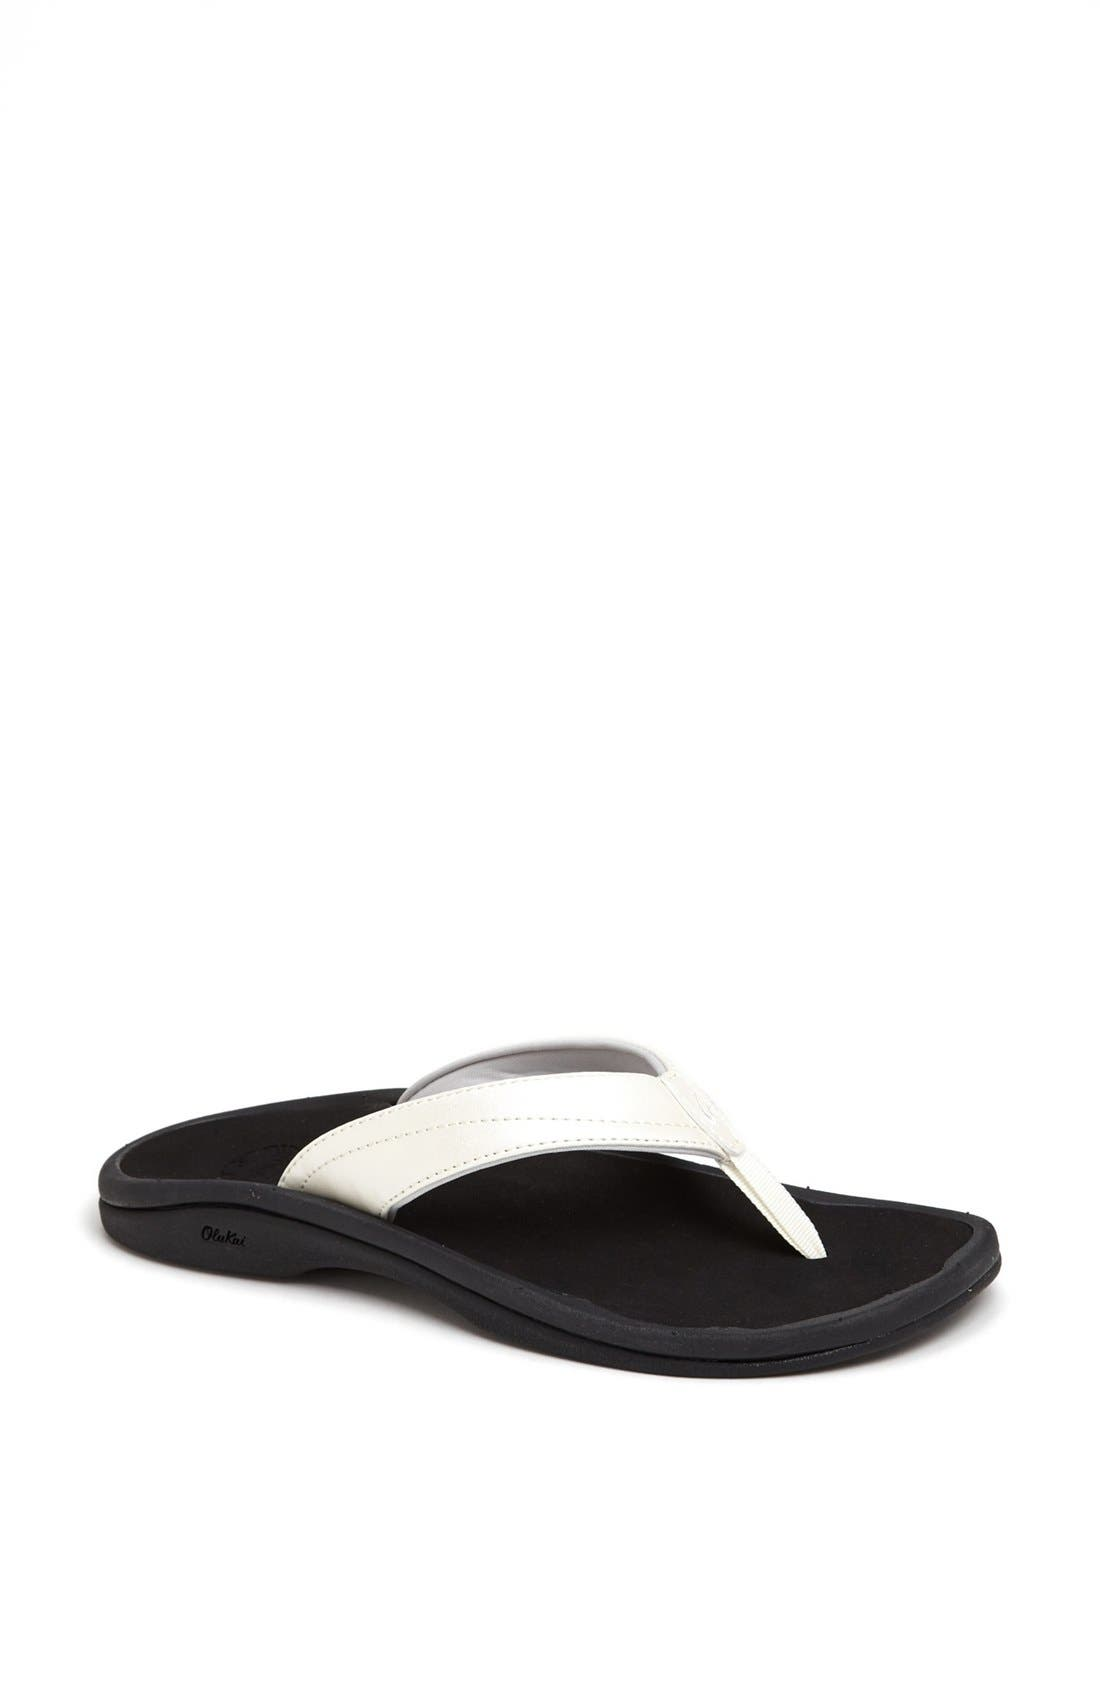 OluKai 'Ohana' Sandal (Women) (Regular Retail Price: $64.95)